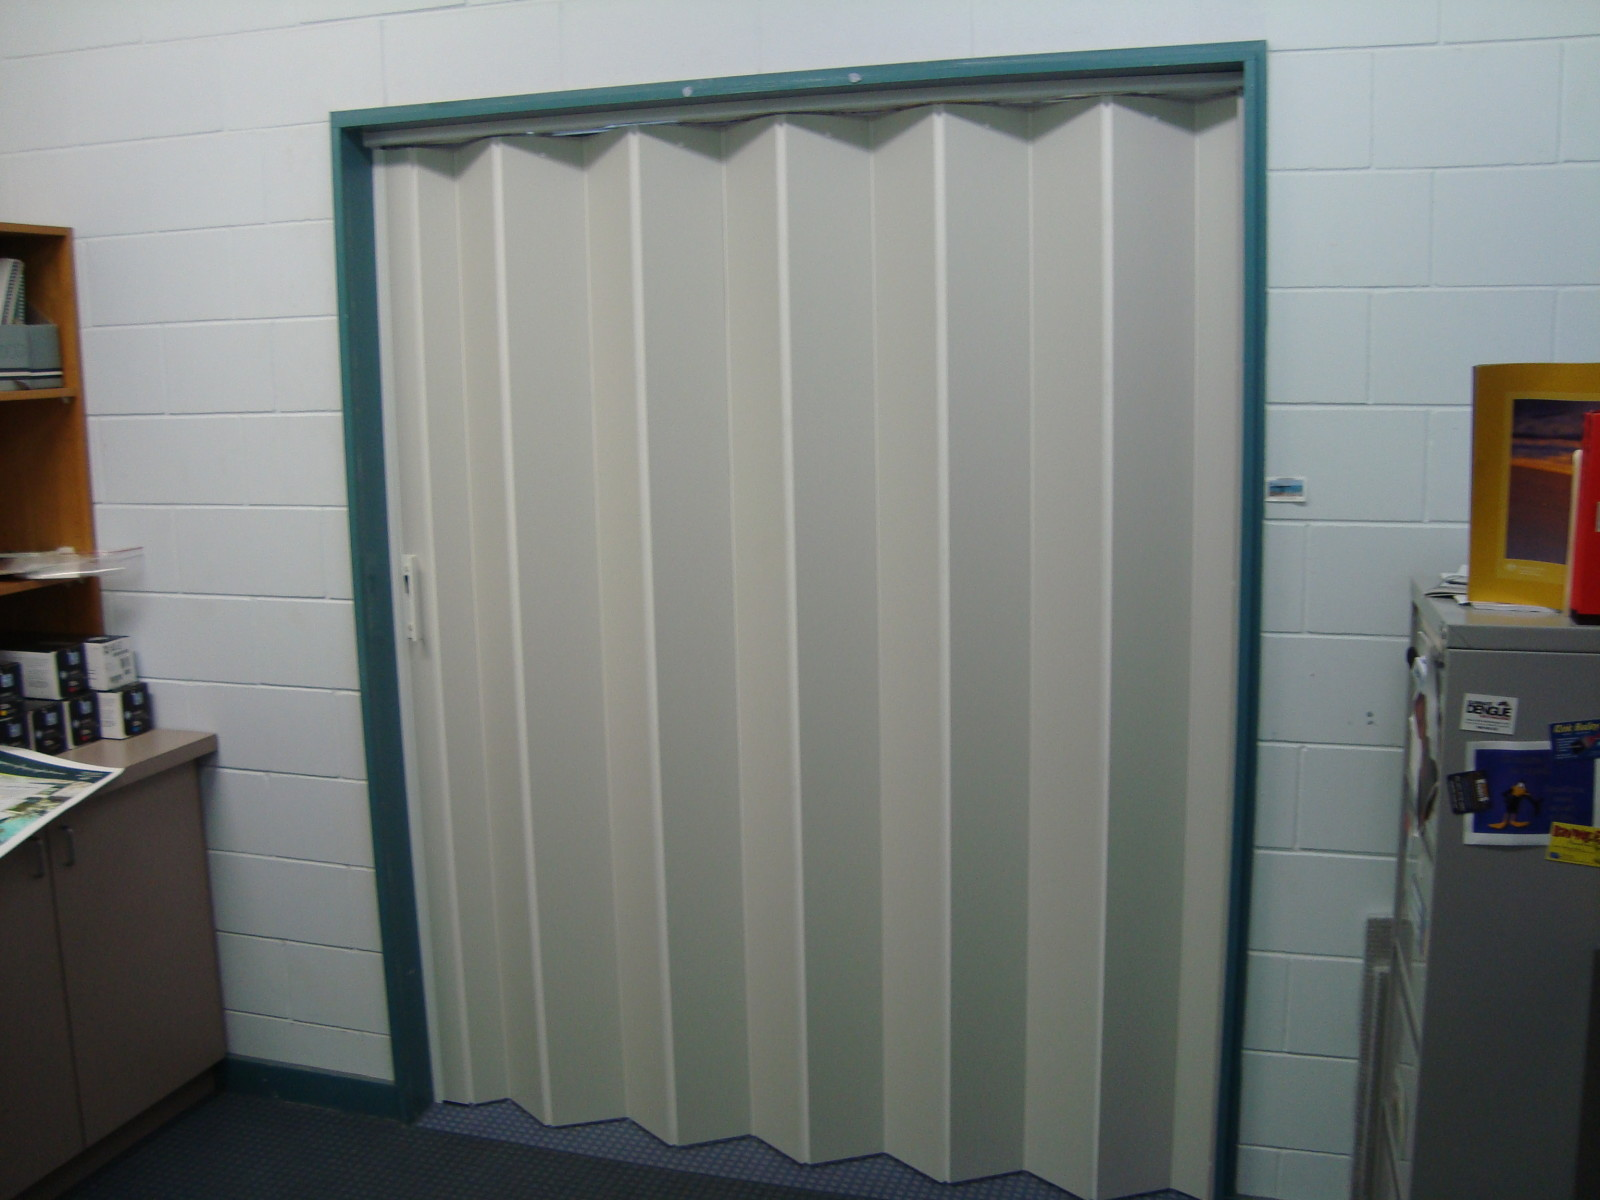 Folding Concertina Doors & Folding Concertina Doors Acoustic Sound Rated Doors | Blinds ...